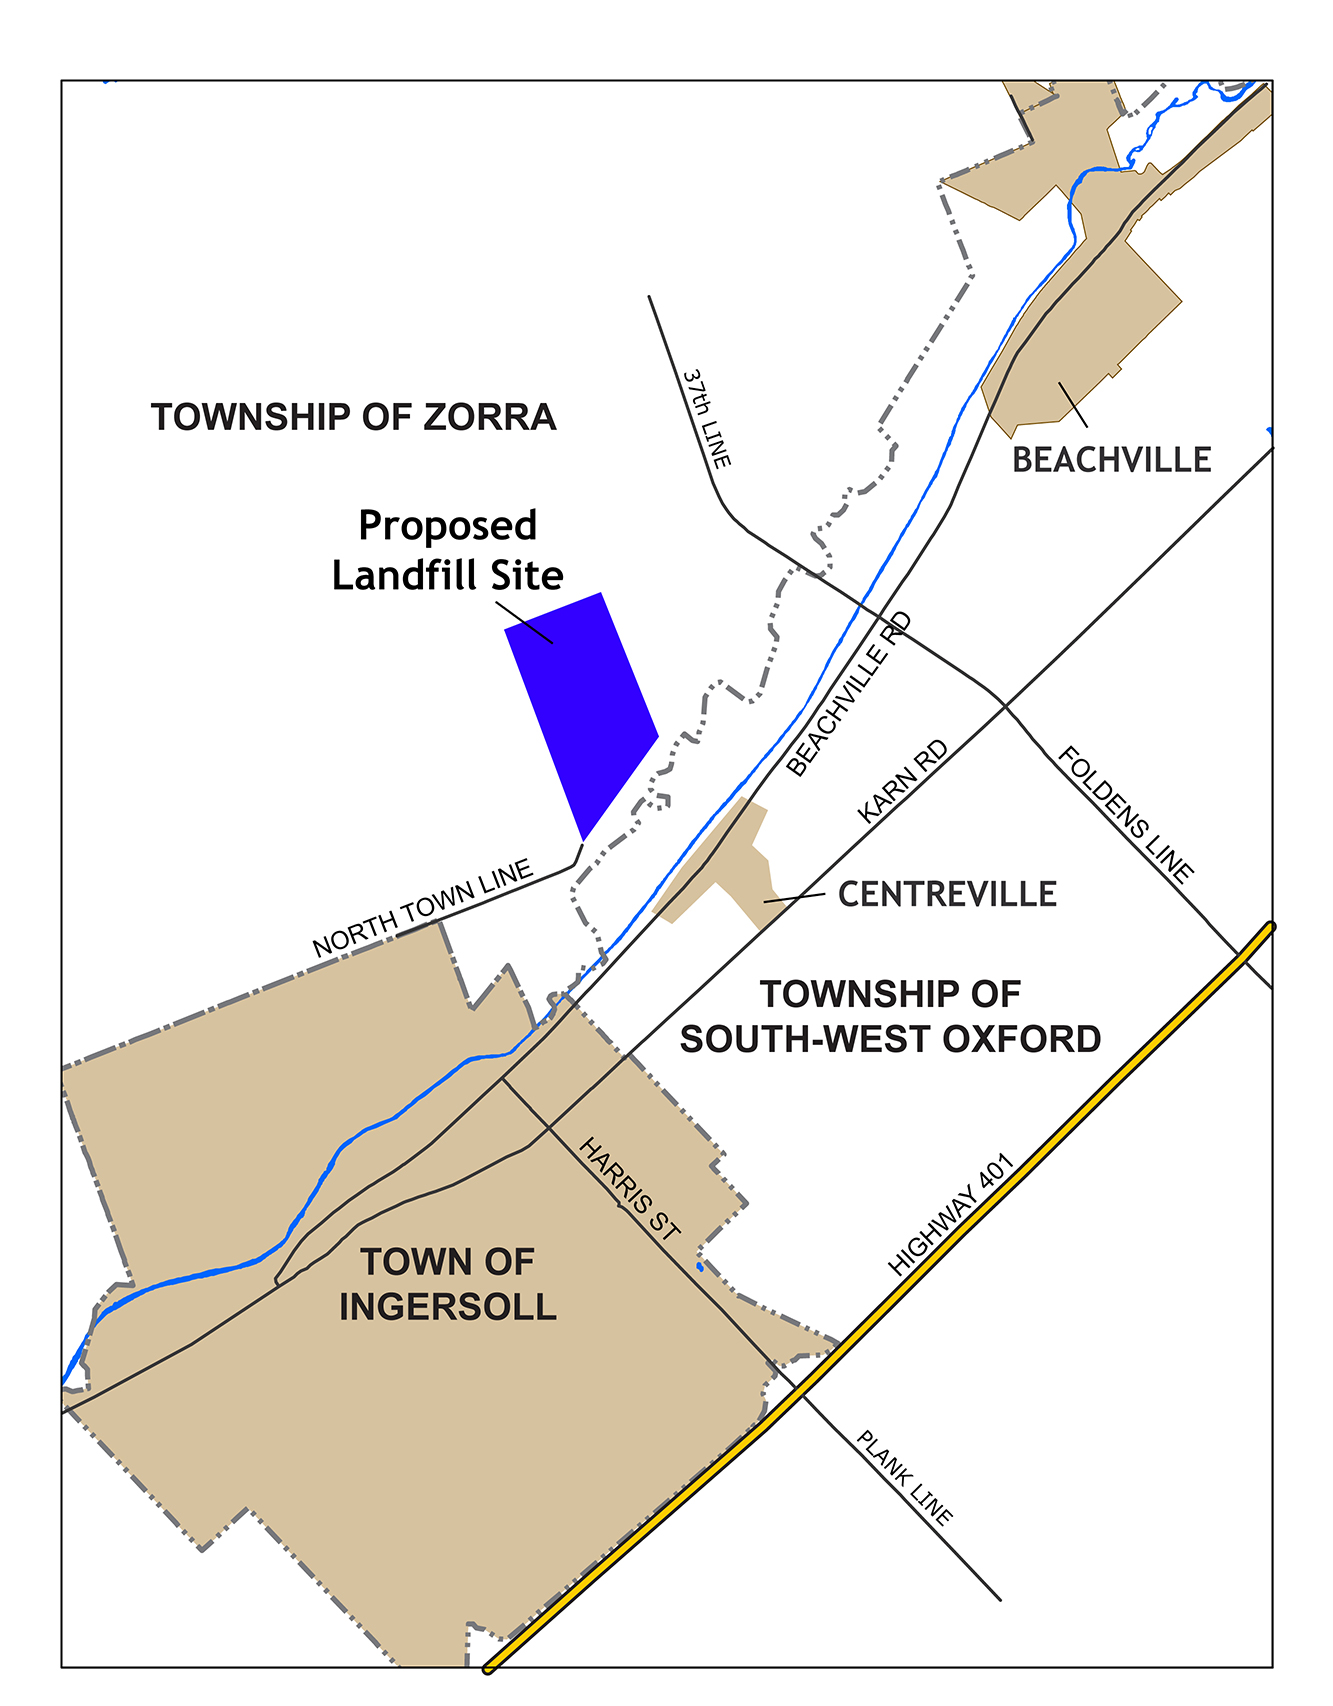 Proposed landfill site